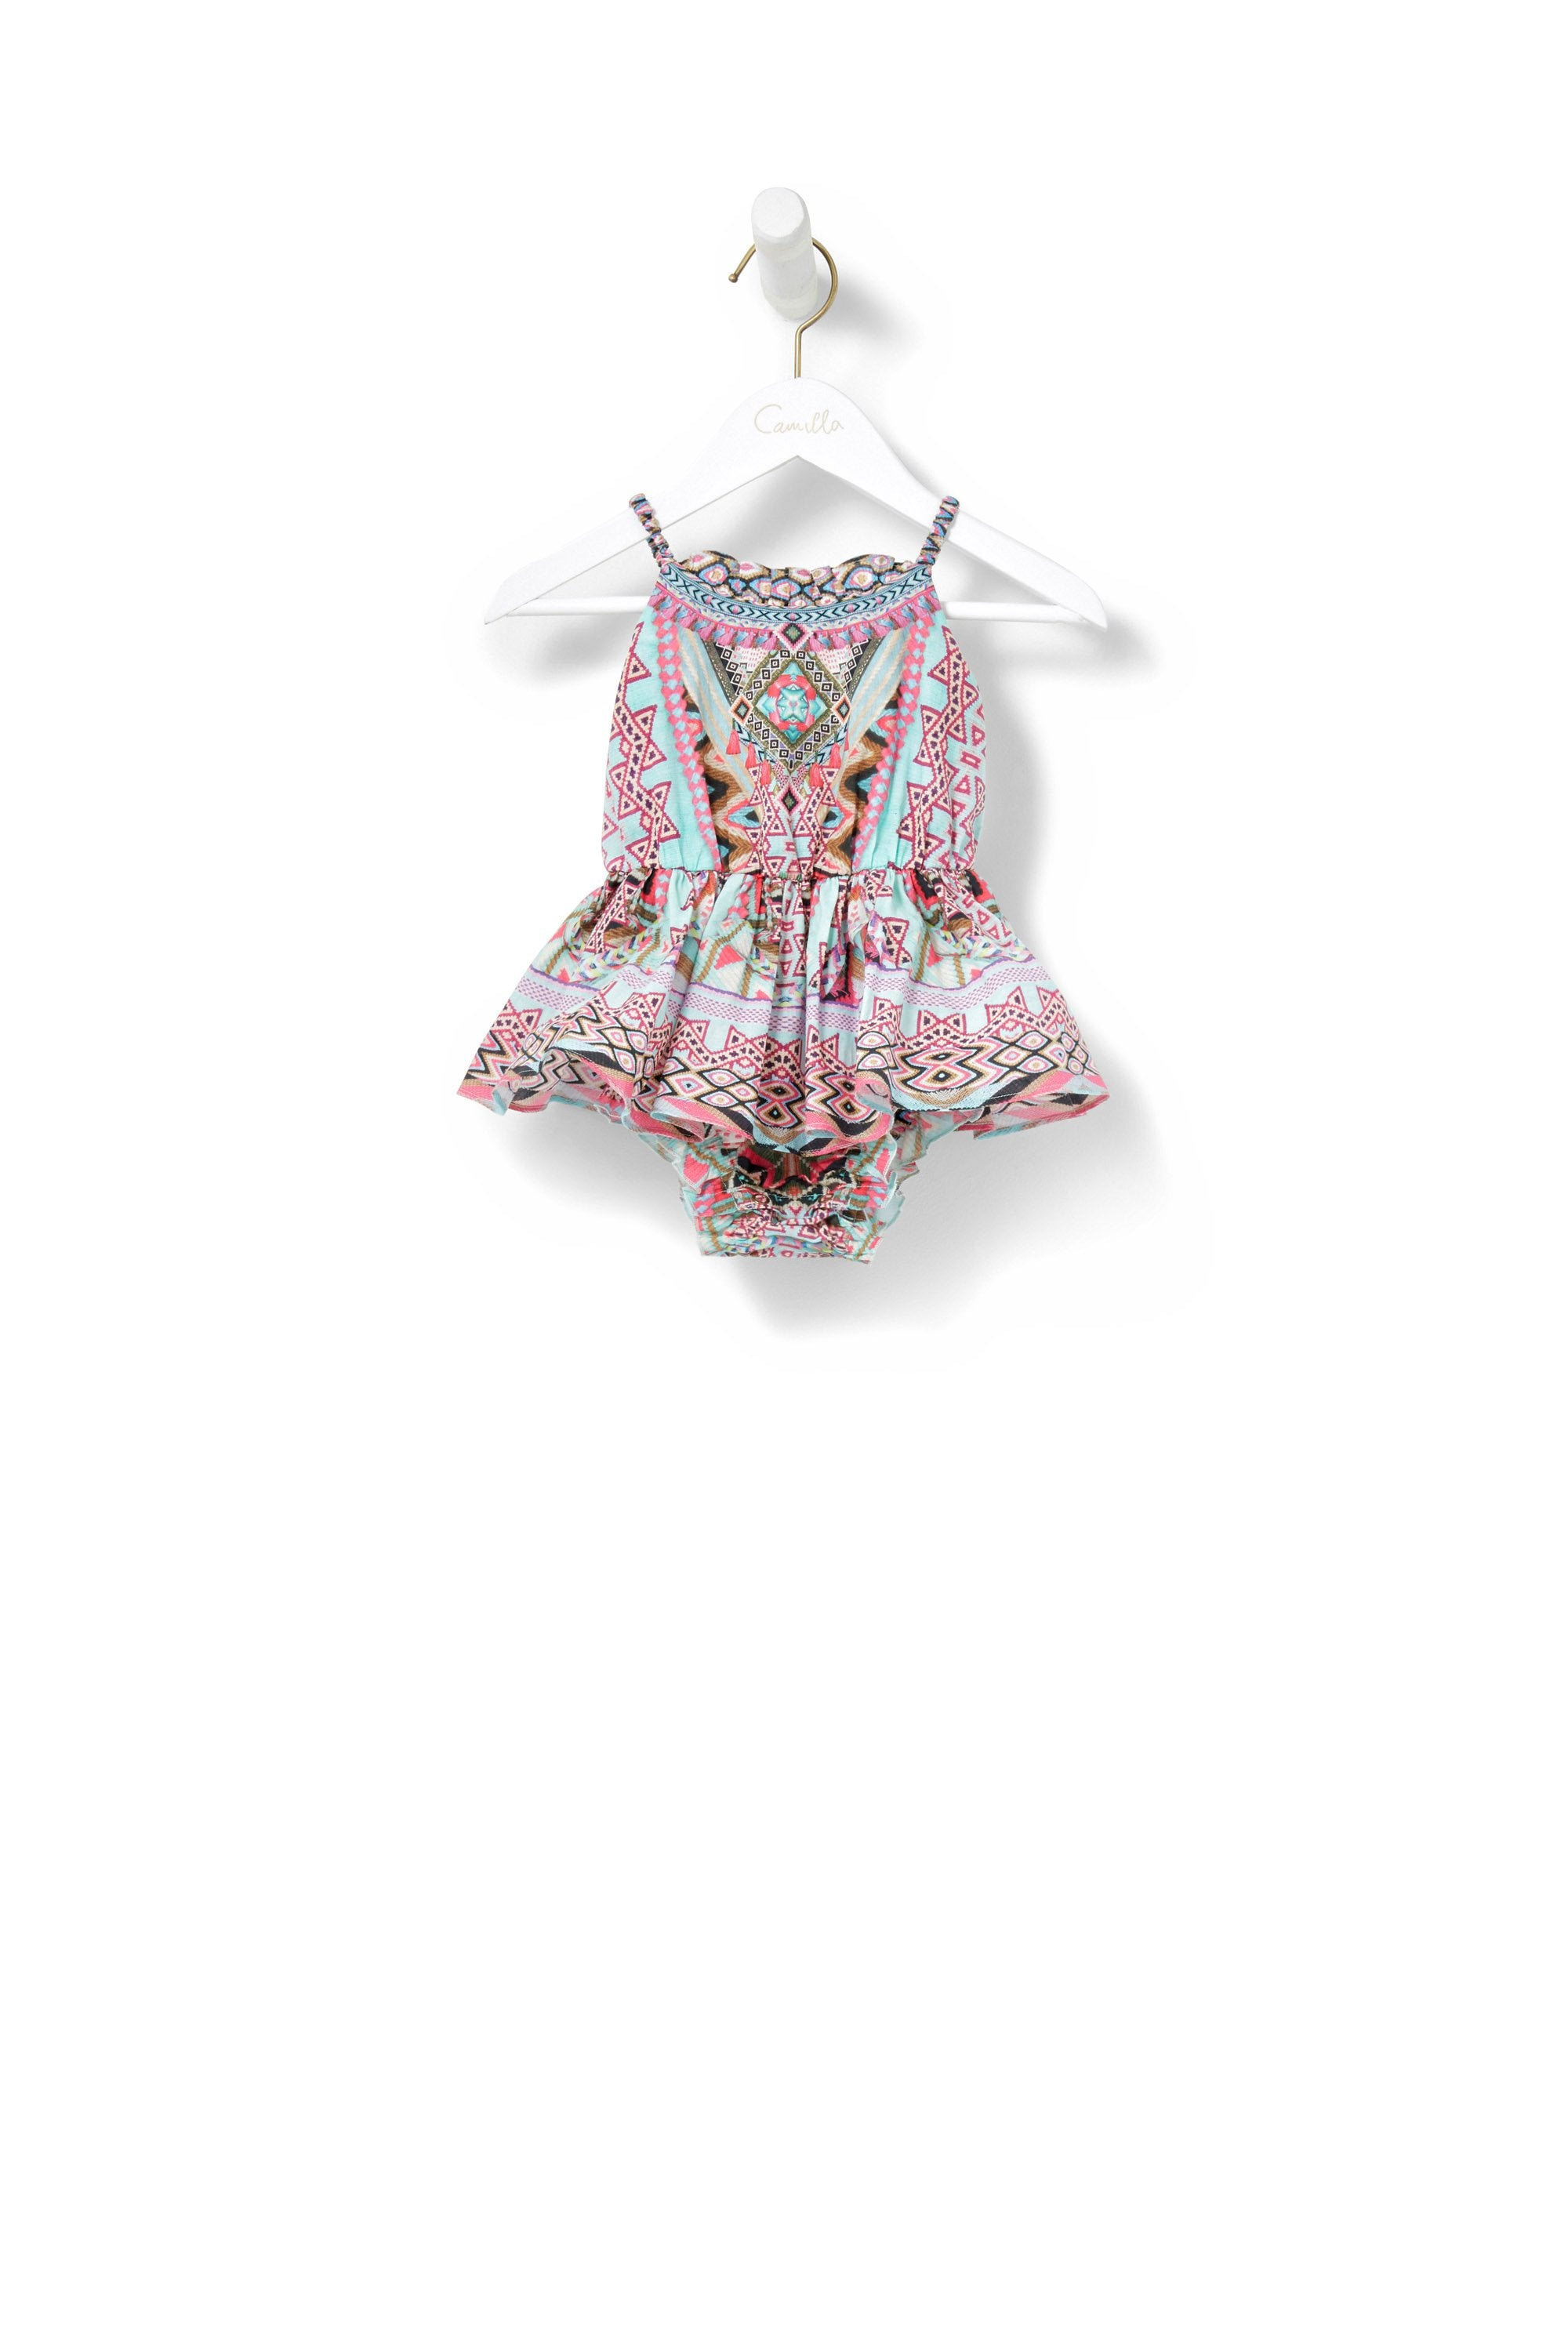 MOCHILLA CHILLER TODDLERS JUMP-DRESS